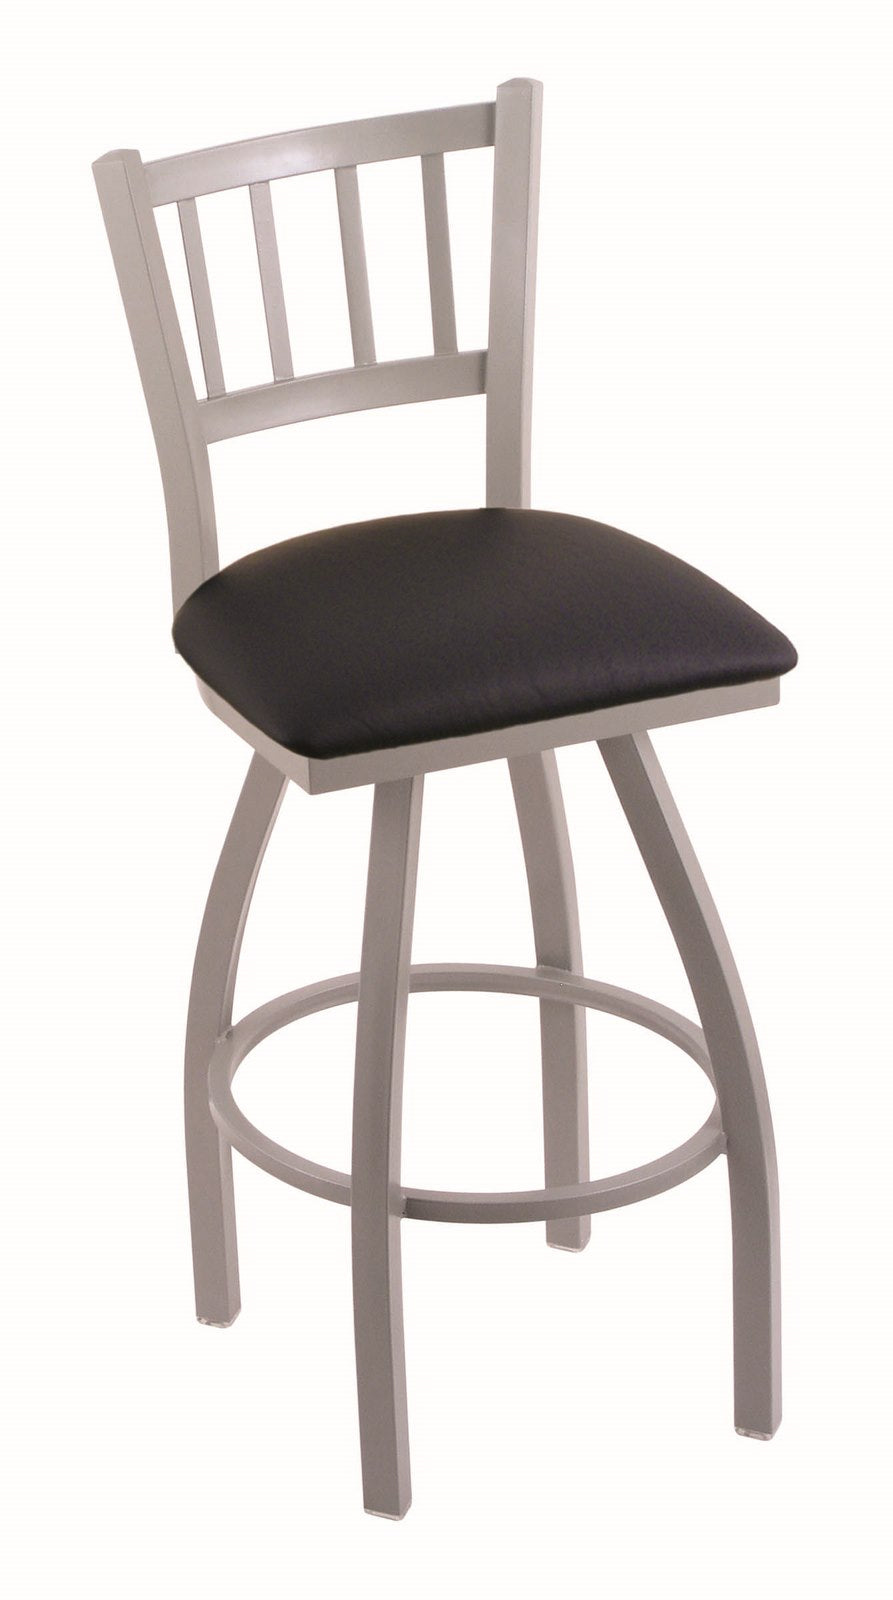 Contessa 36 swivel extra tall bar stool anodized nickel black vinyl